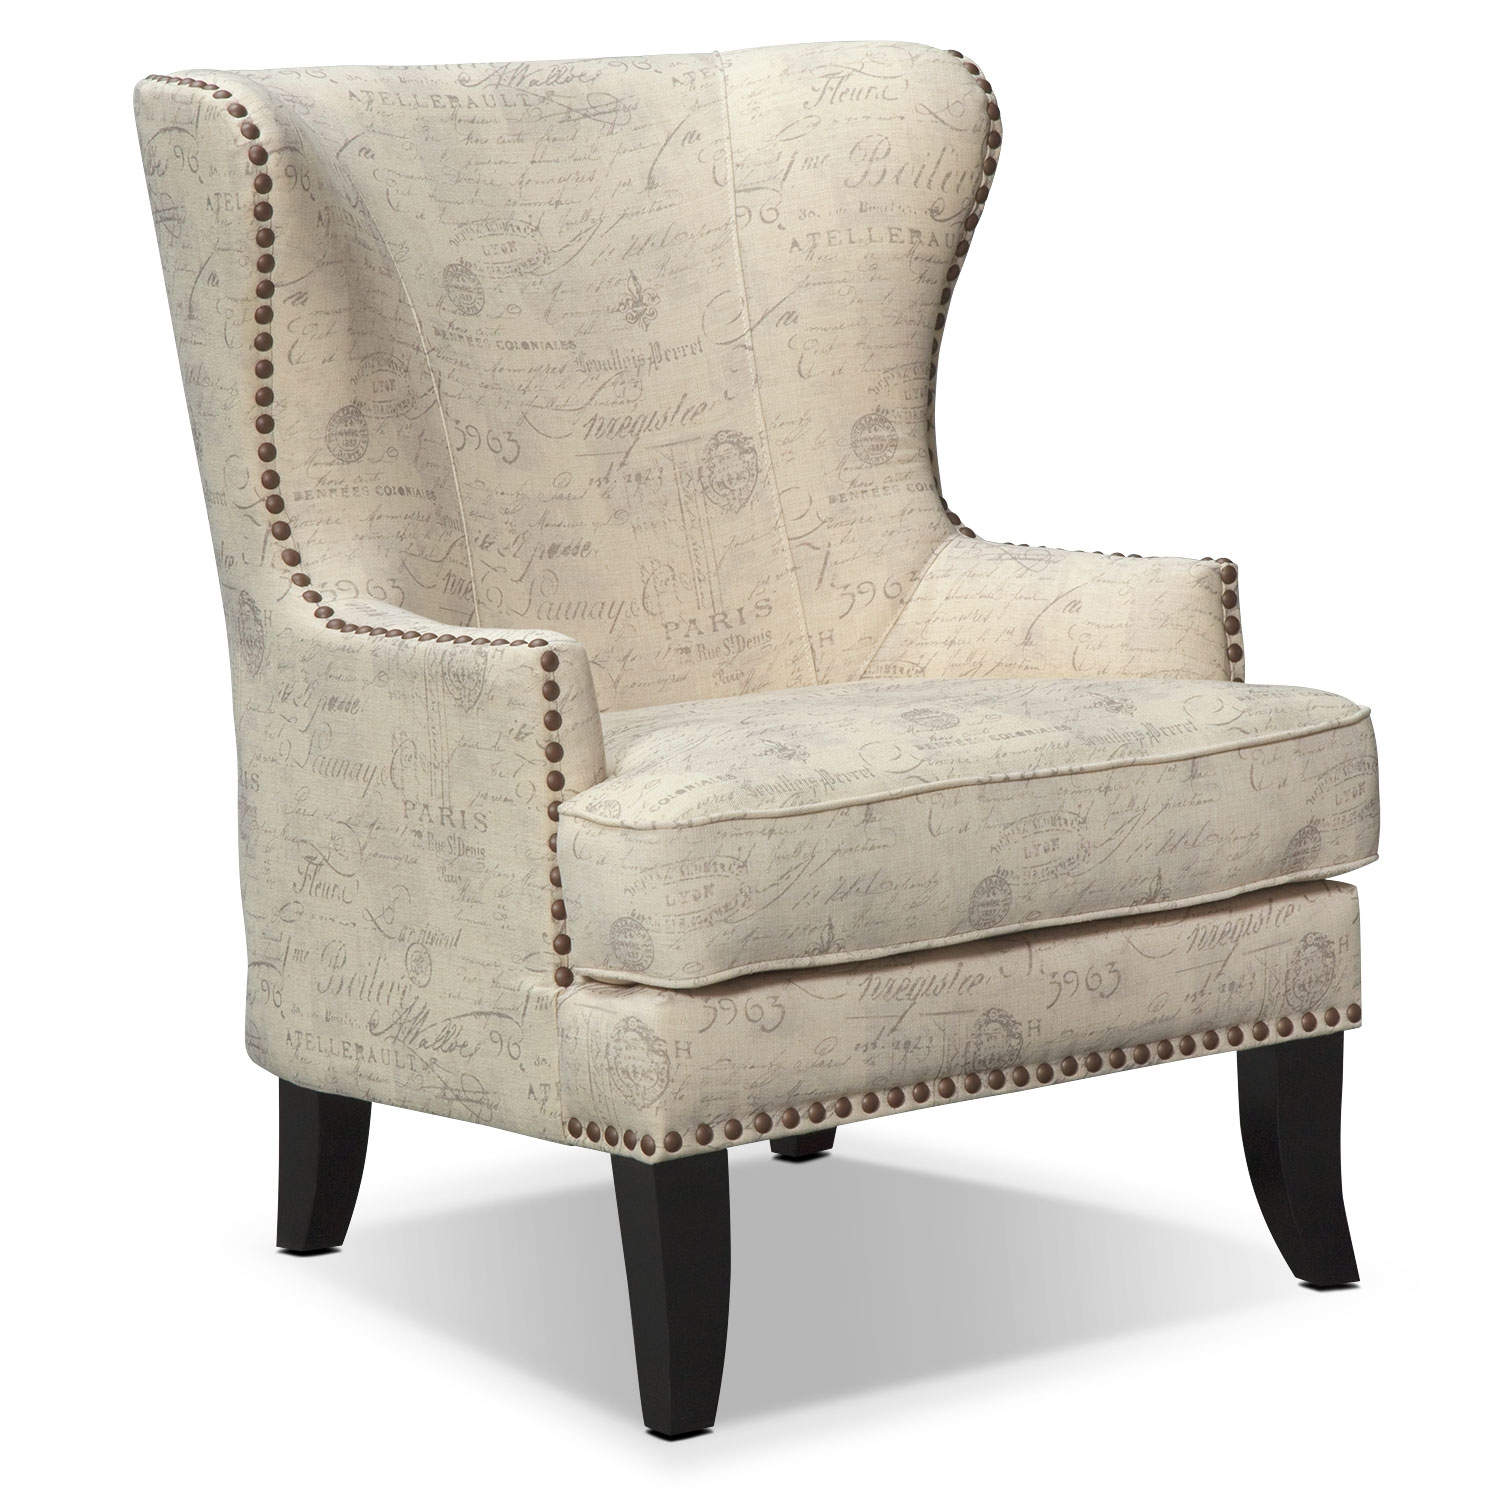 Amazing accent chair for home furniture ideas with chairs arms  and Interior Decor Great Accent Chair For Home Furniture Ideas With